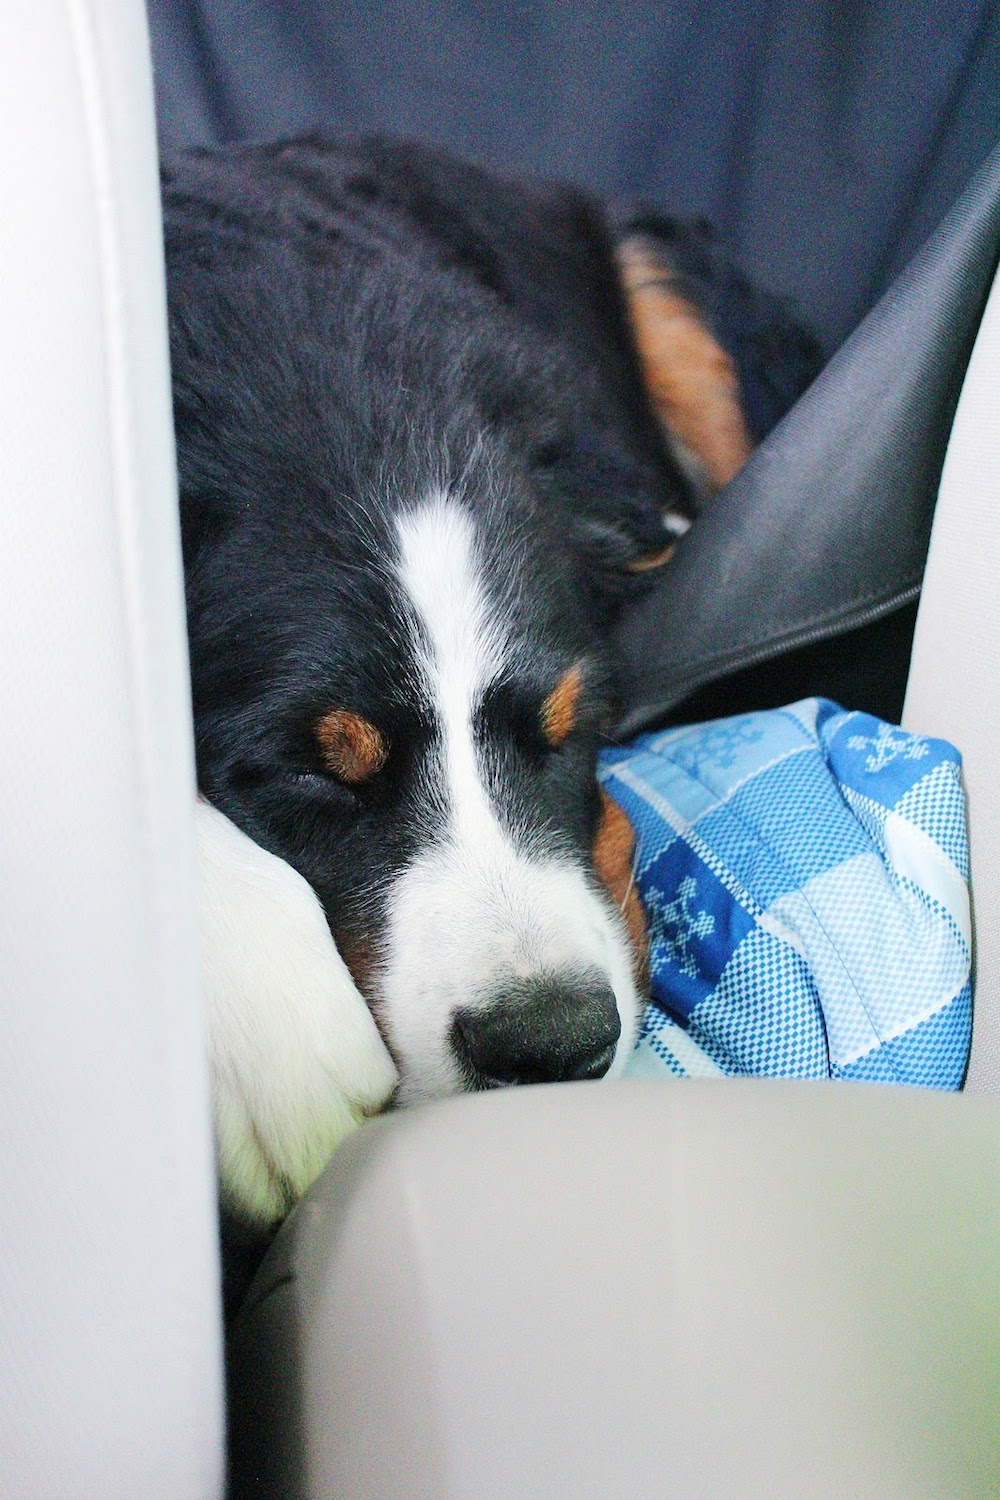 Hondo was a huge champ for our long road trip. Occasionally he'd lay his head on our shoulders for a snuggle, but mostly, he was just fast asleep! We went from Georgia to Illinois to Iowa to Wisconsin to Indiana to Georgia over a week and a half.